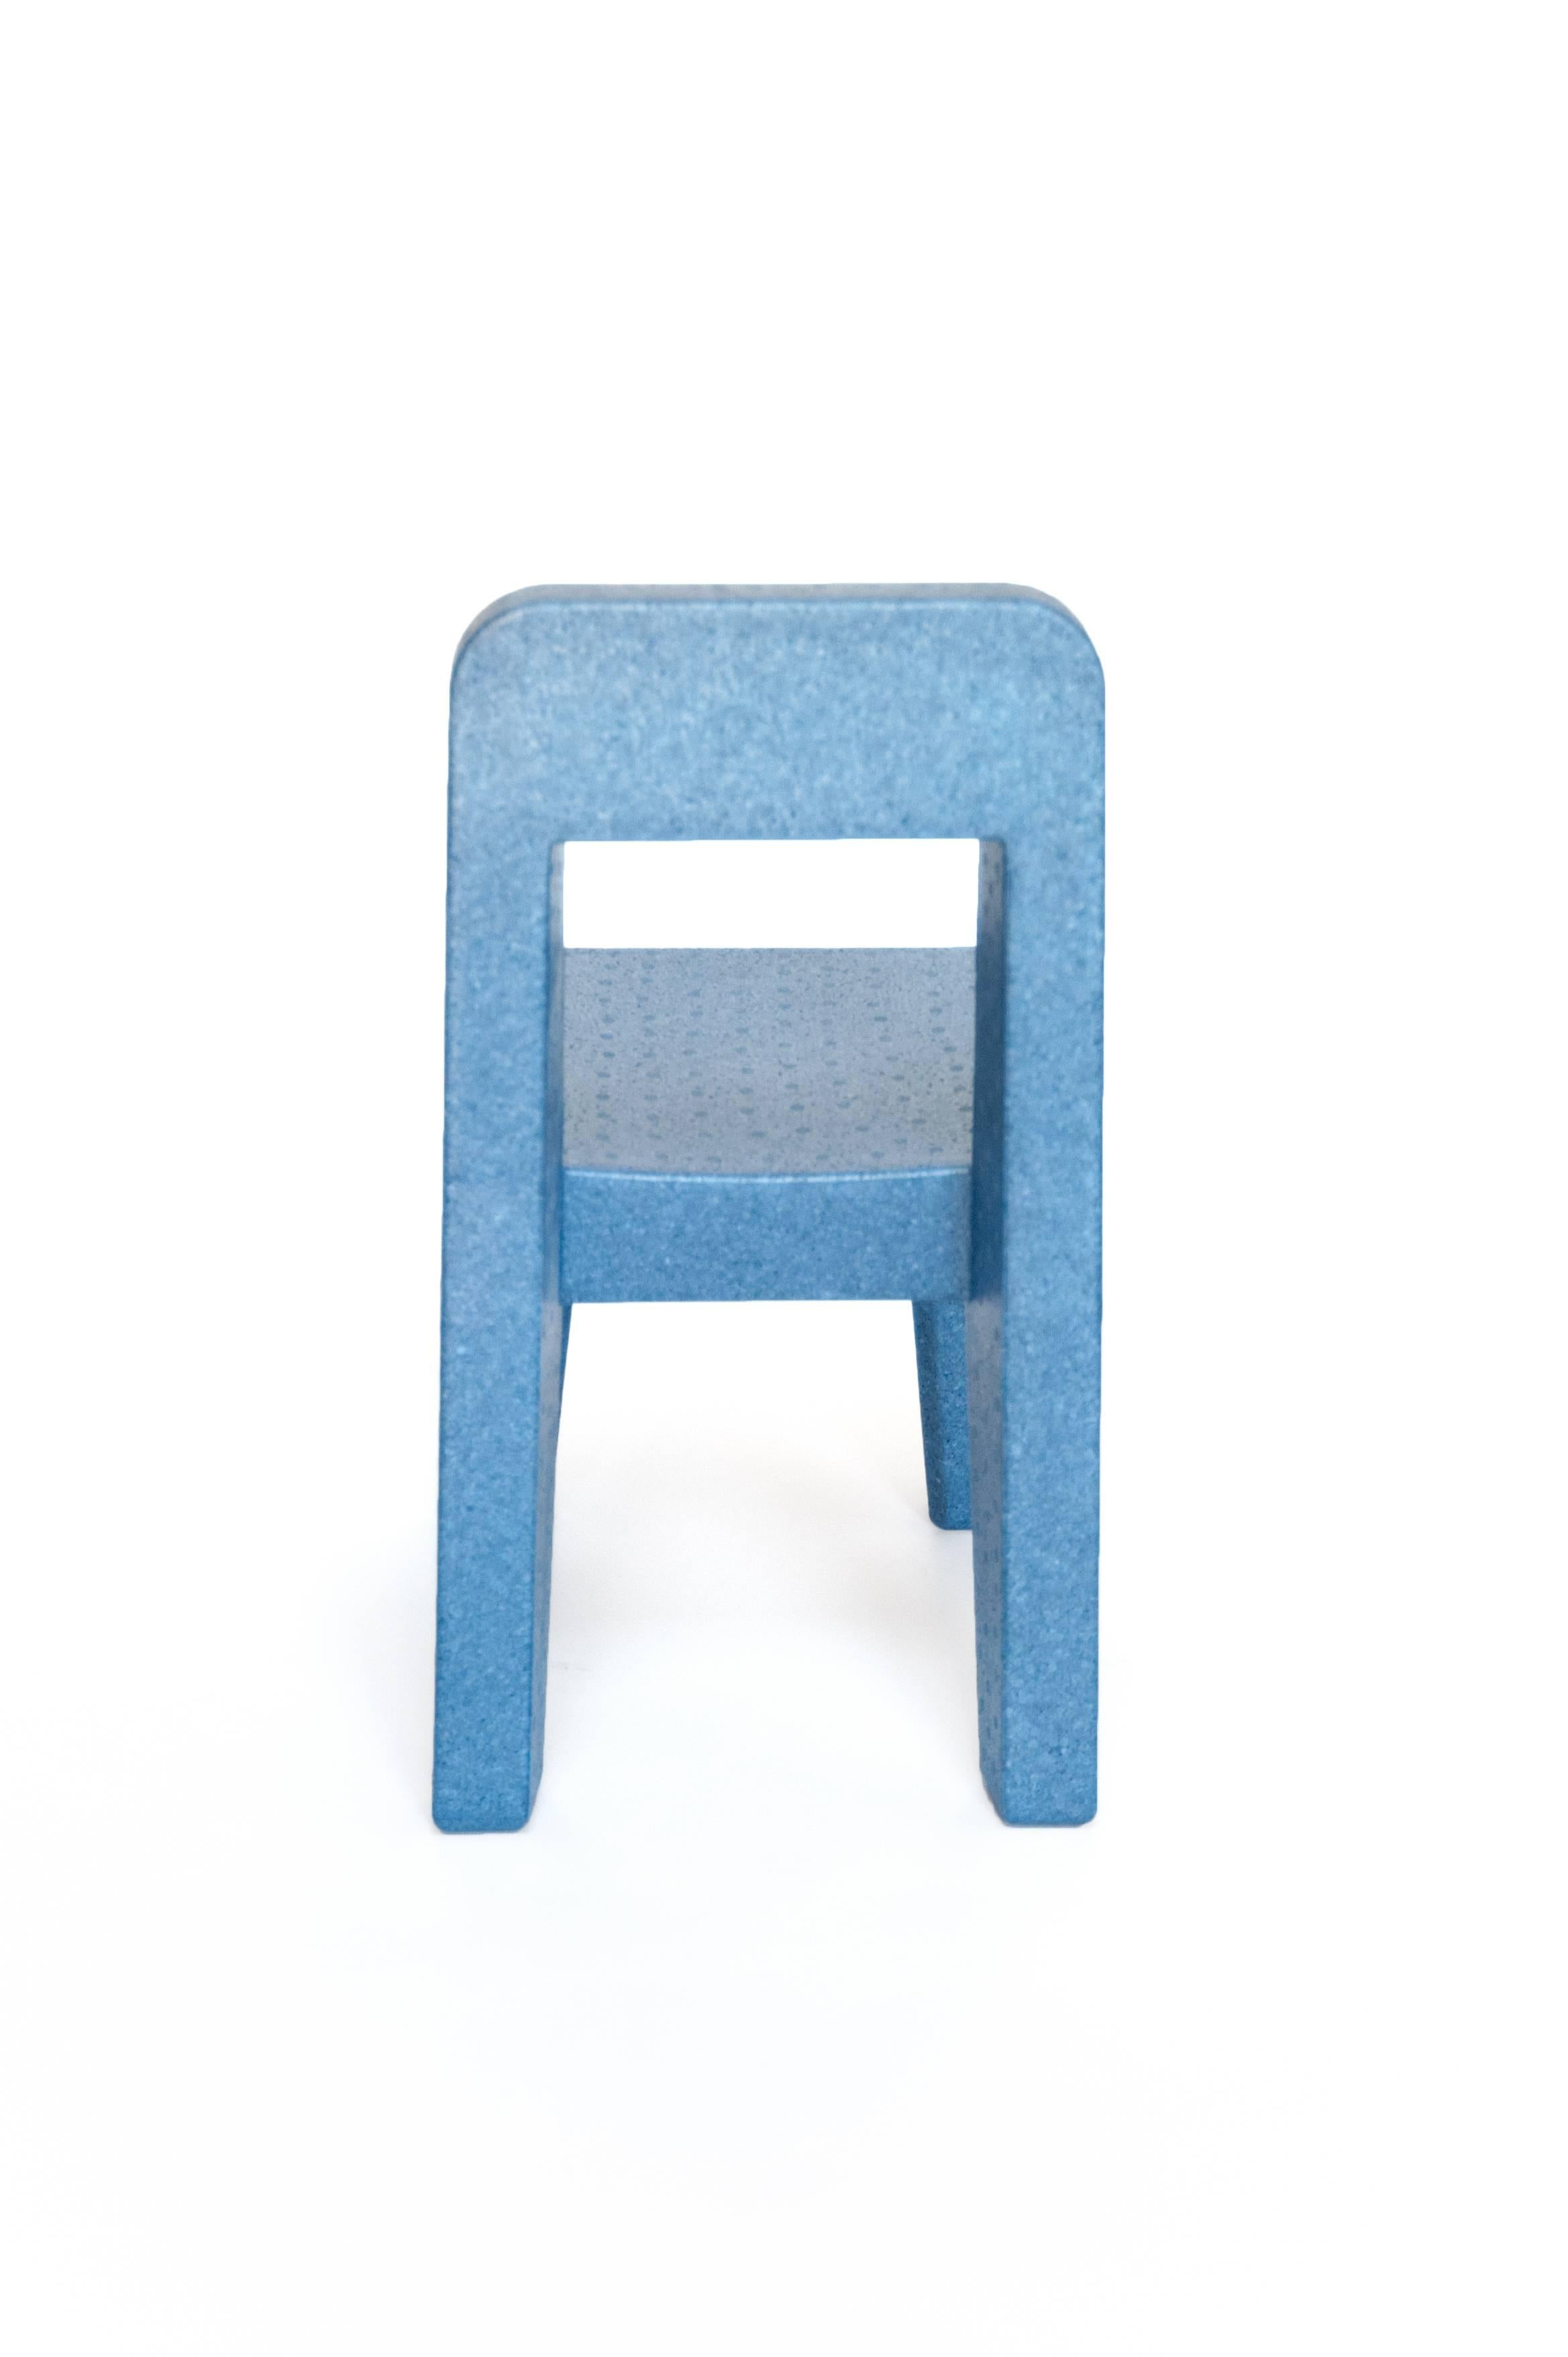 Seggiolina Pop Child Chair By Enzo Mari In Polypropylene Foam, Italy, 2004  In Excellent